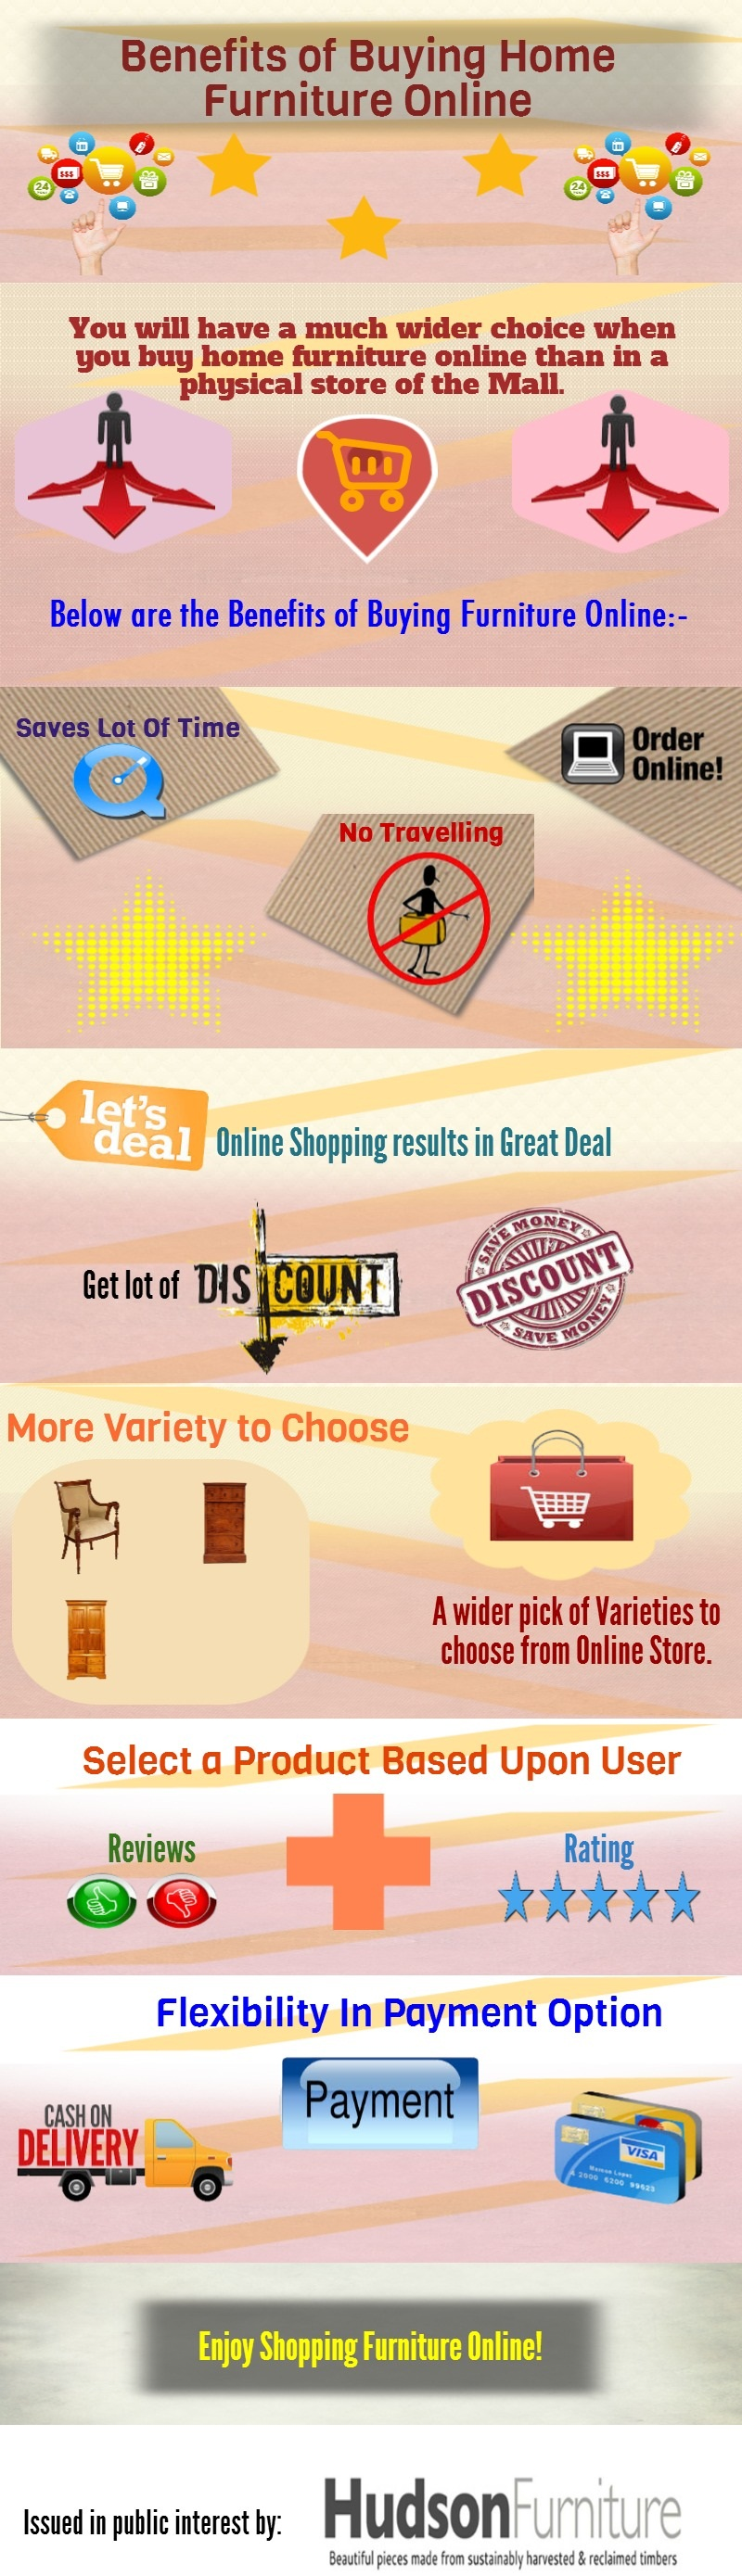 Benefits Of Buying Home Furniture Online Visual Ly